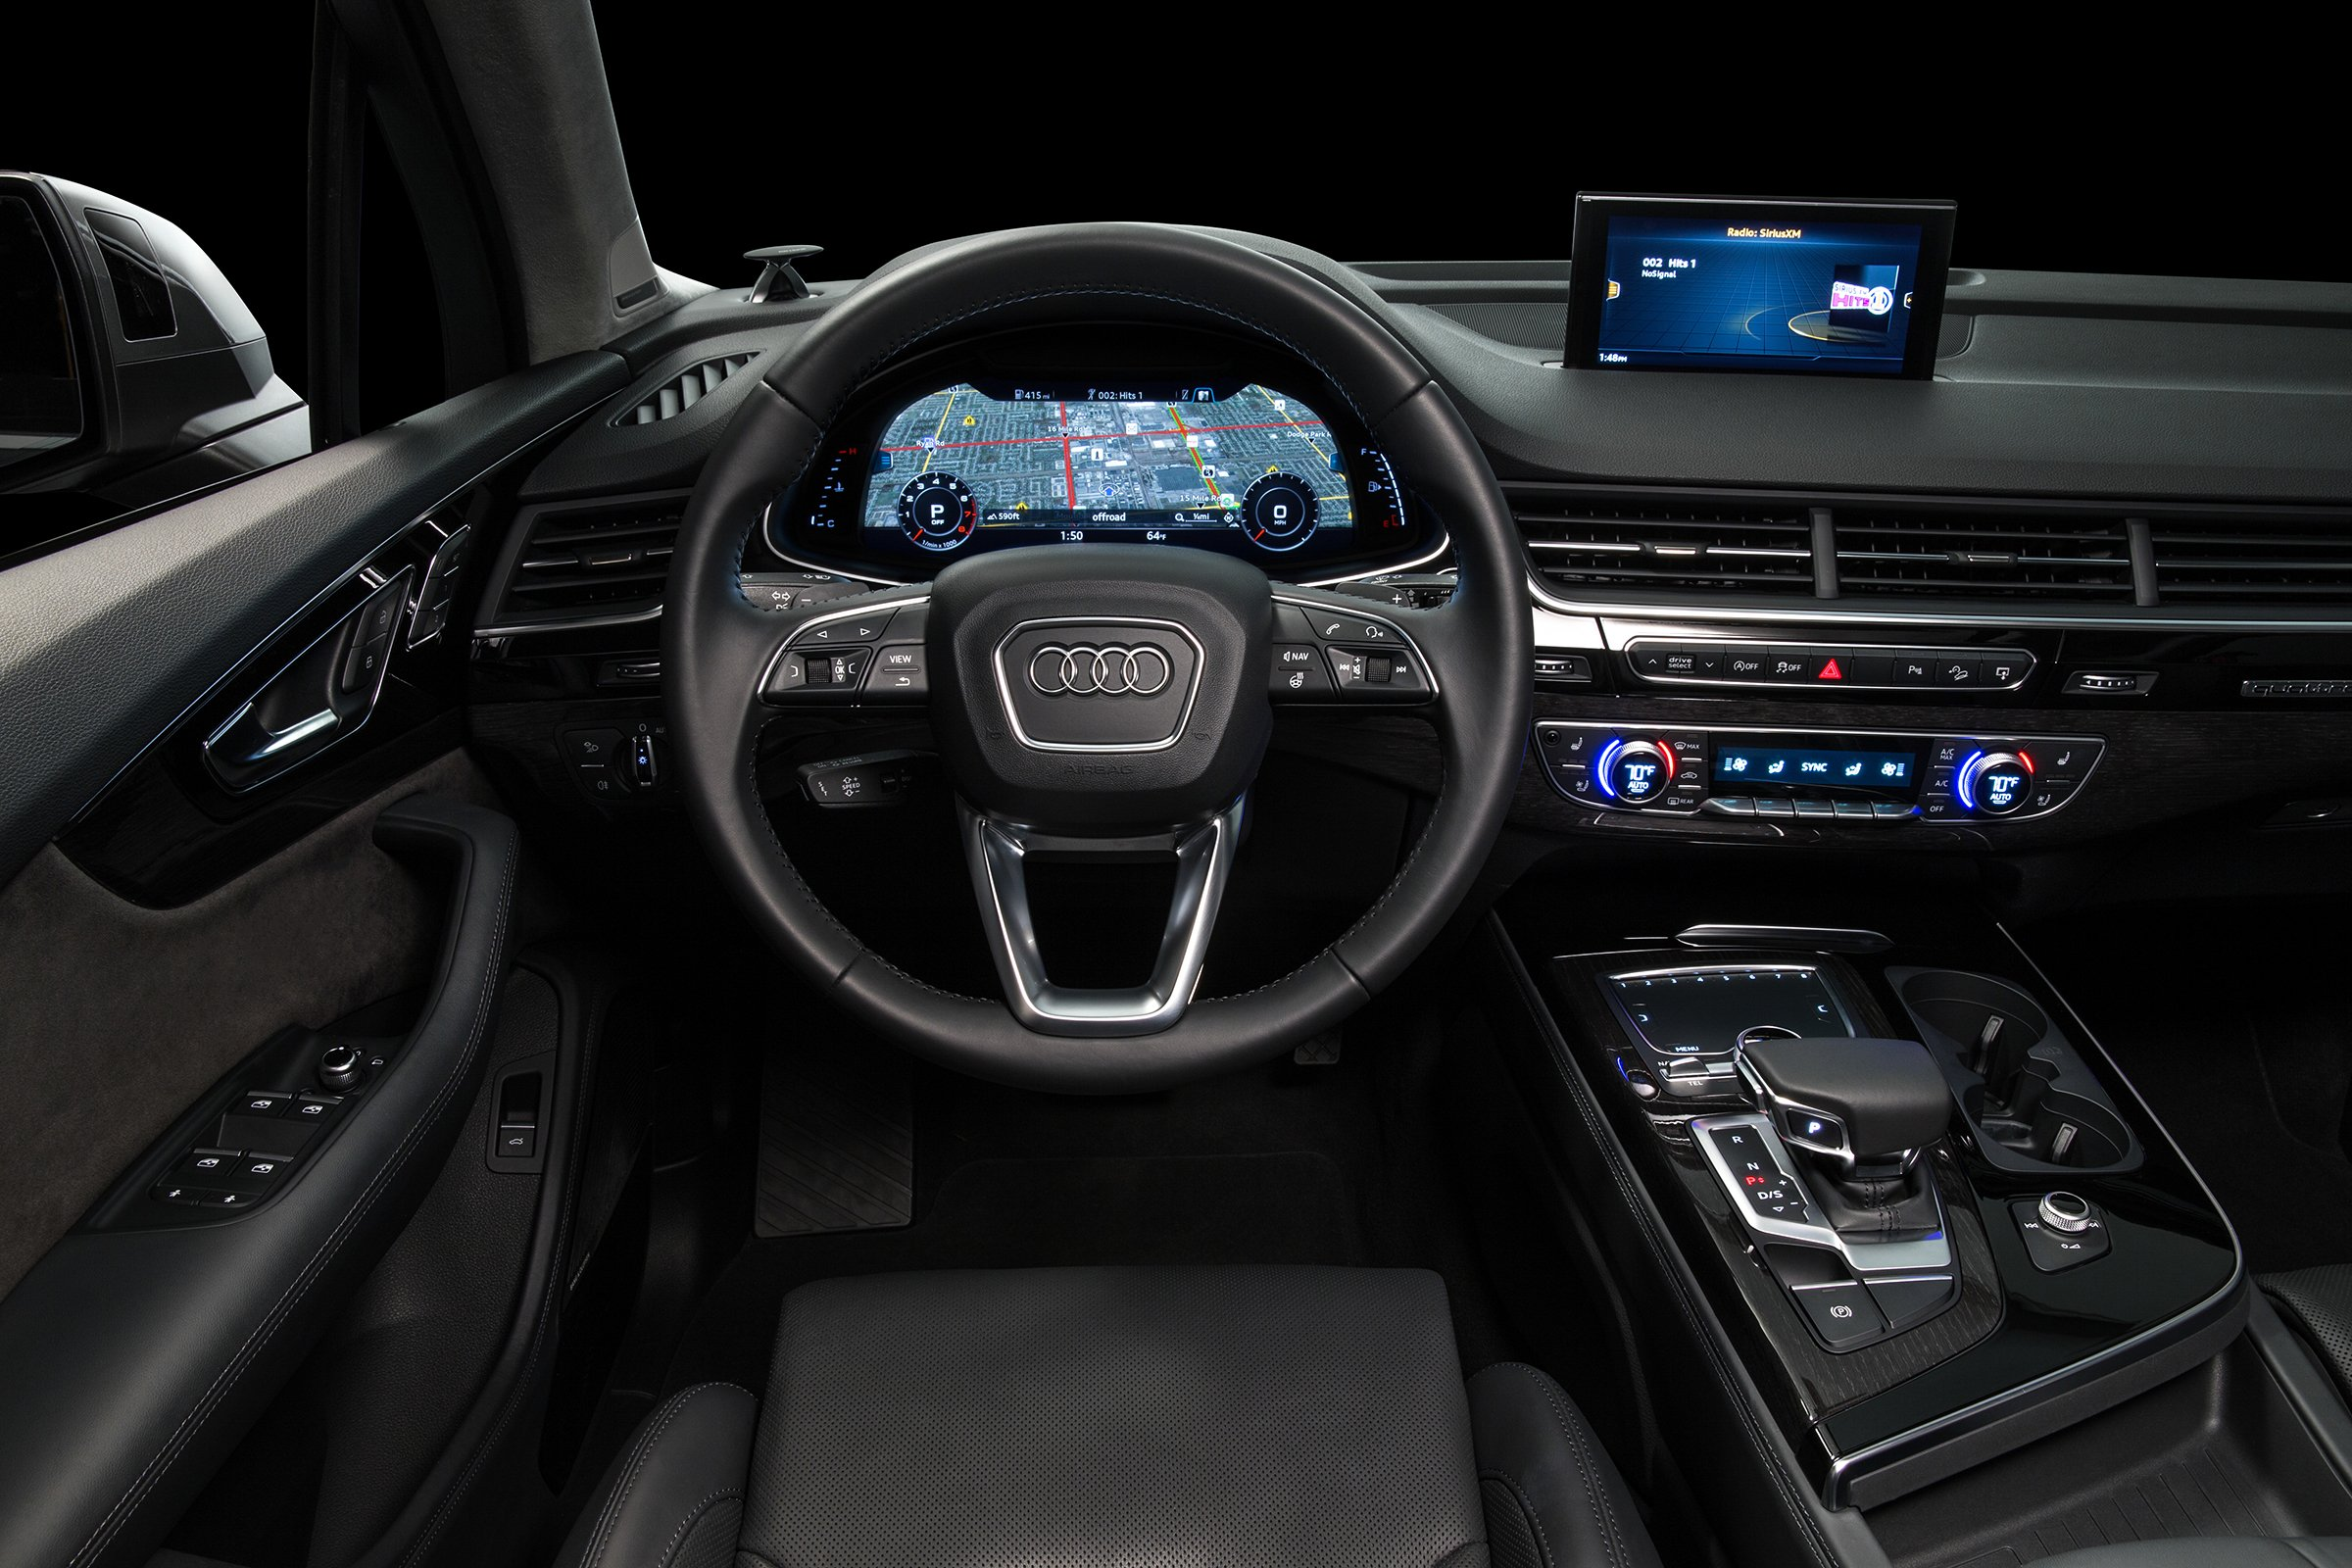 Car Display Wallpaper Vw 2017 Audi Q7 3 0t Great Adventures Automotive Rhythms